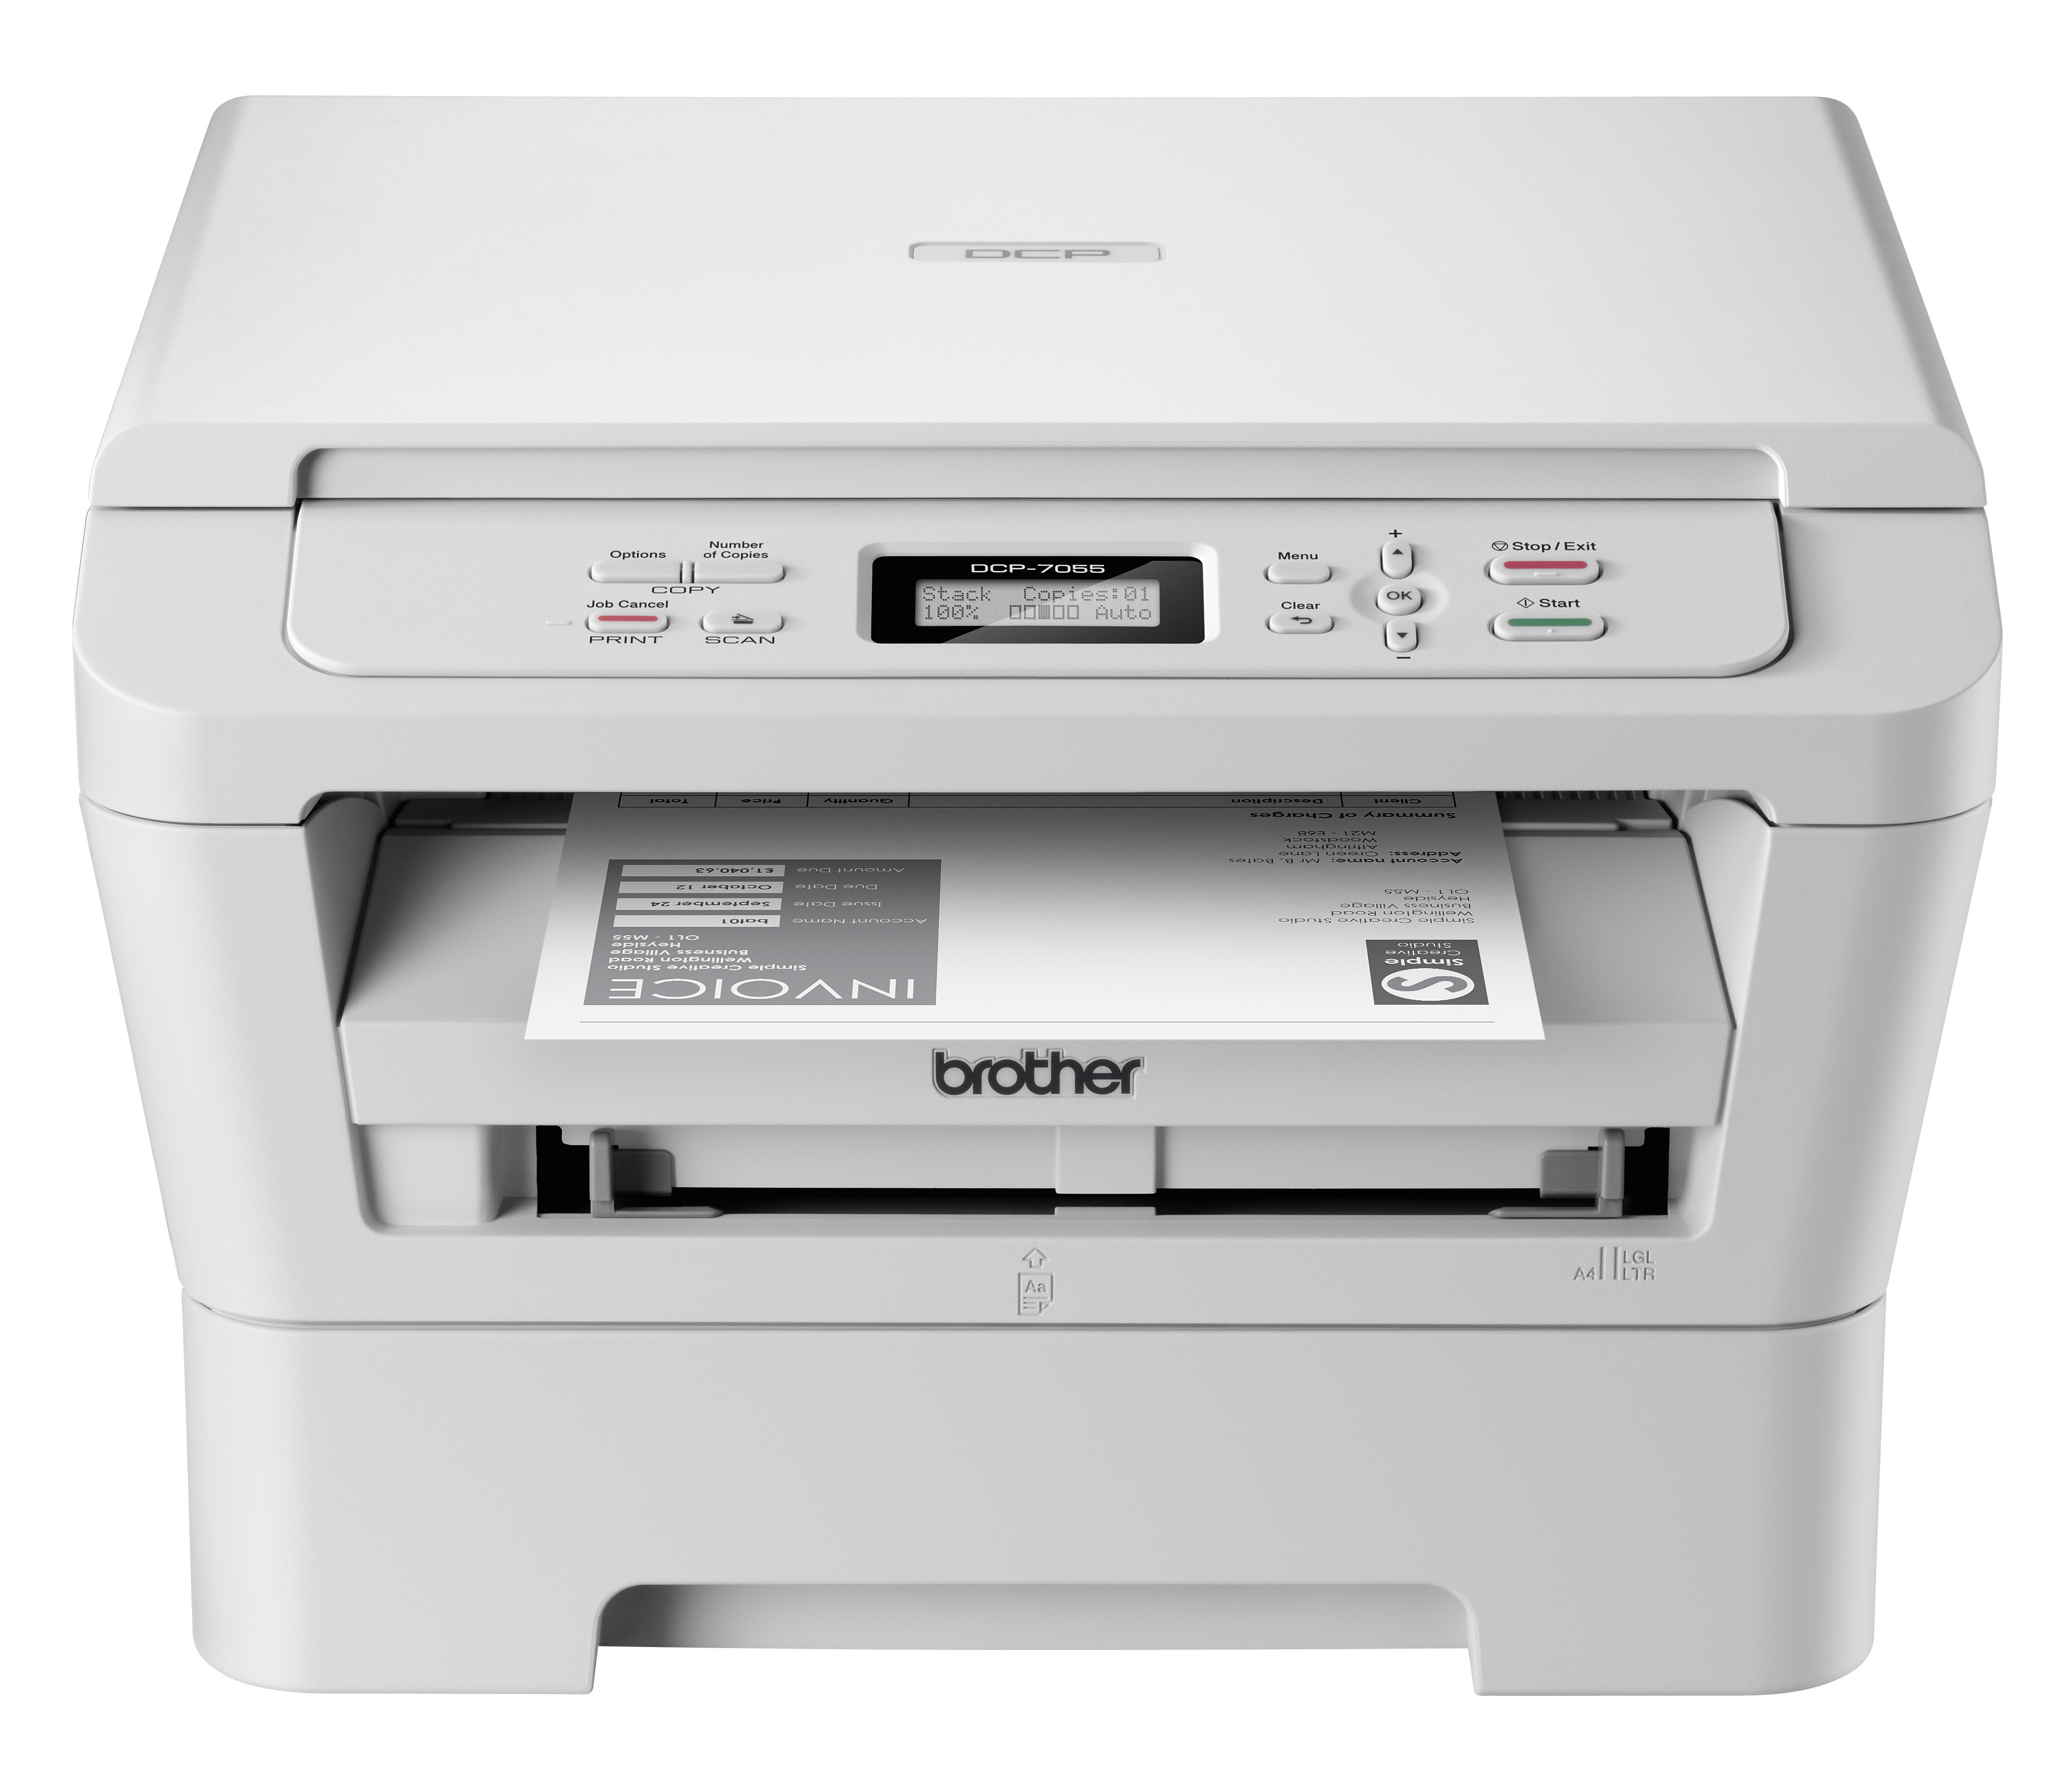 Brother DCP-7055 Multifunction Mono Laser Printer